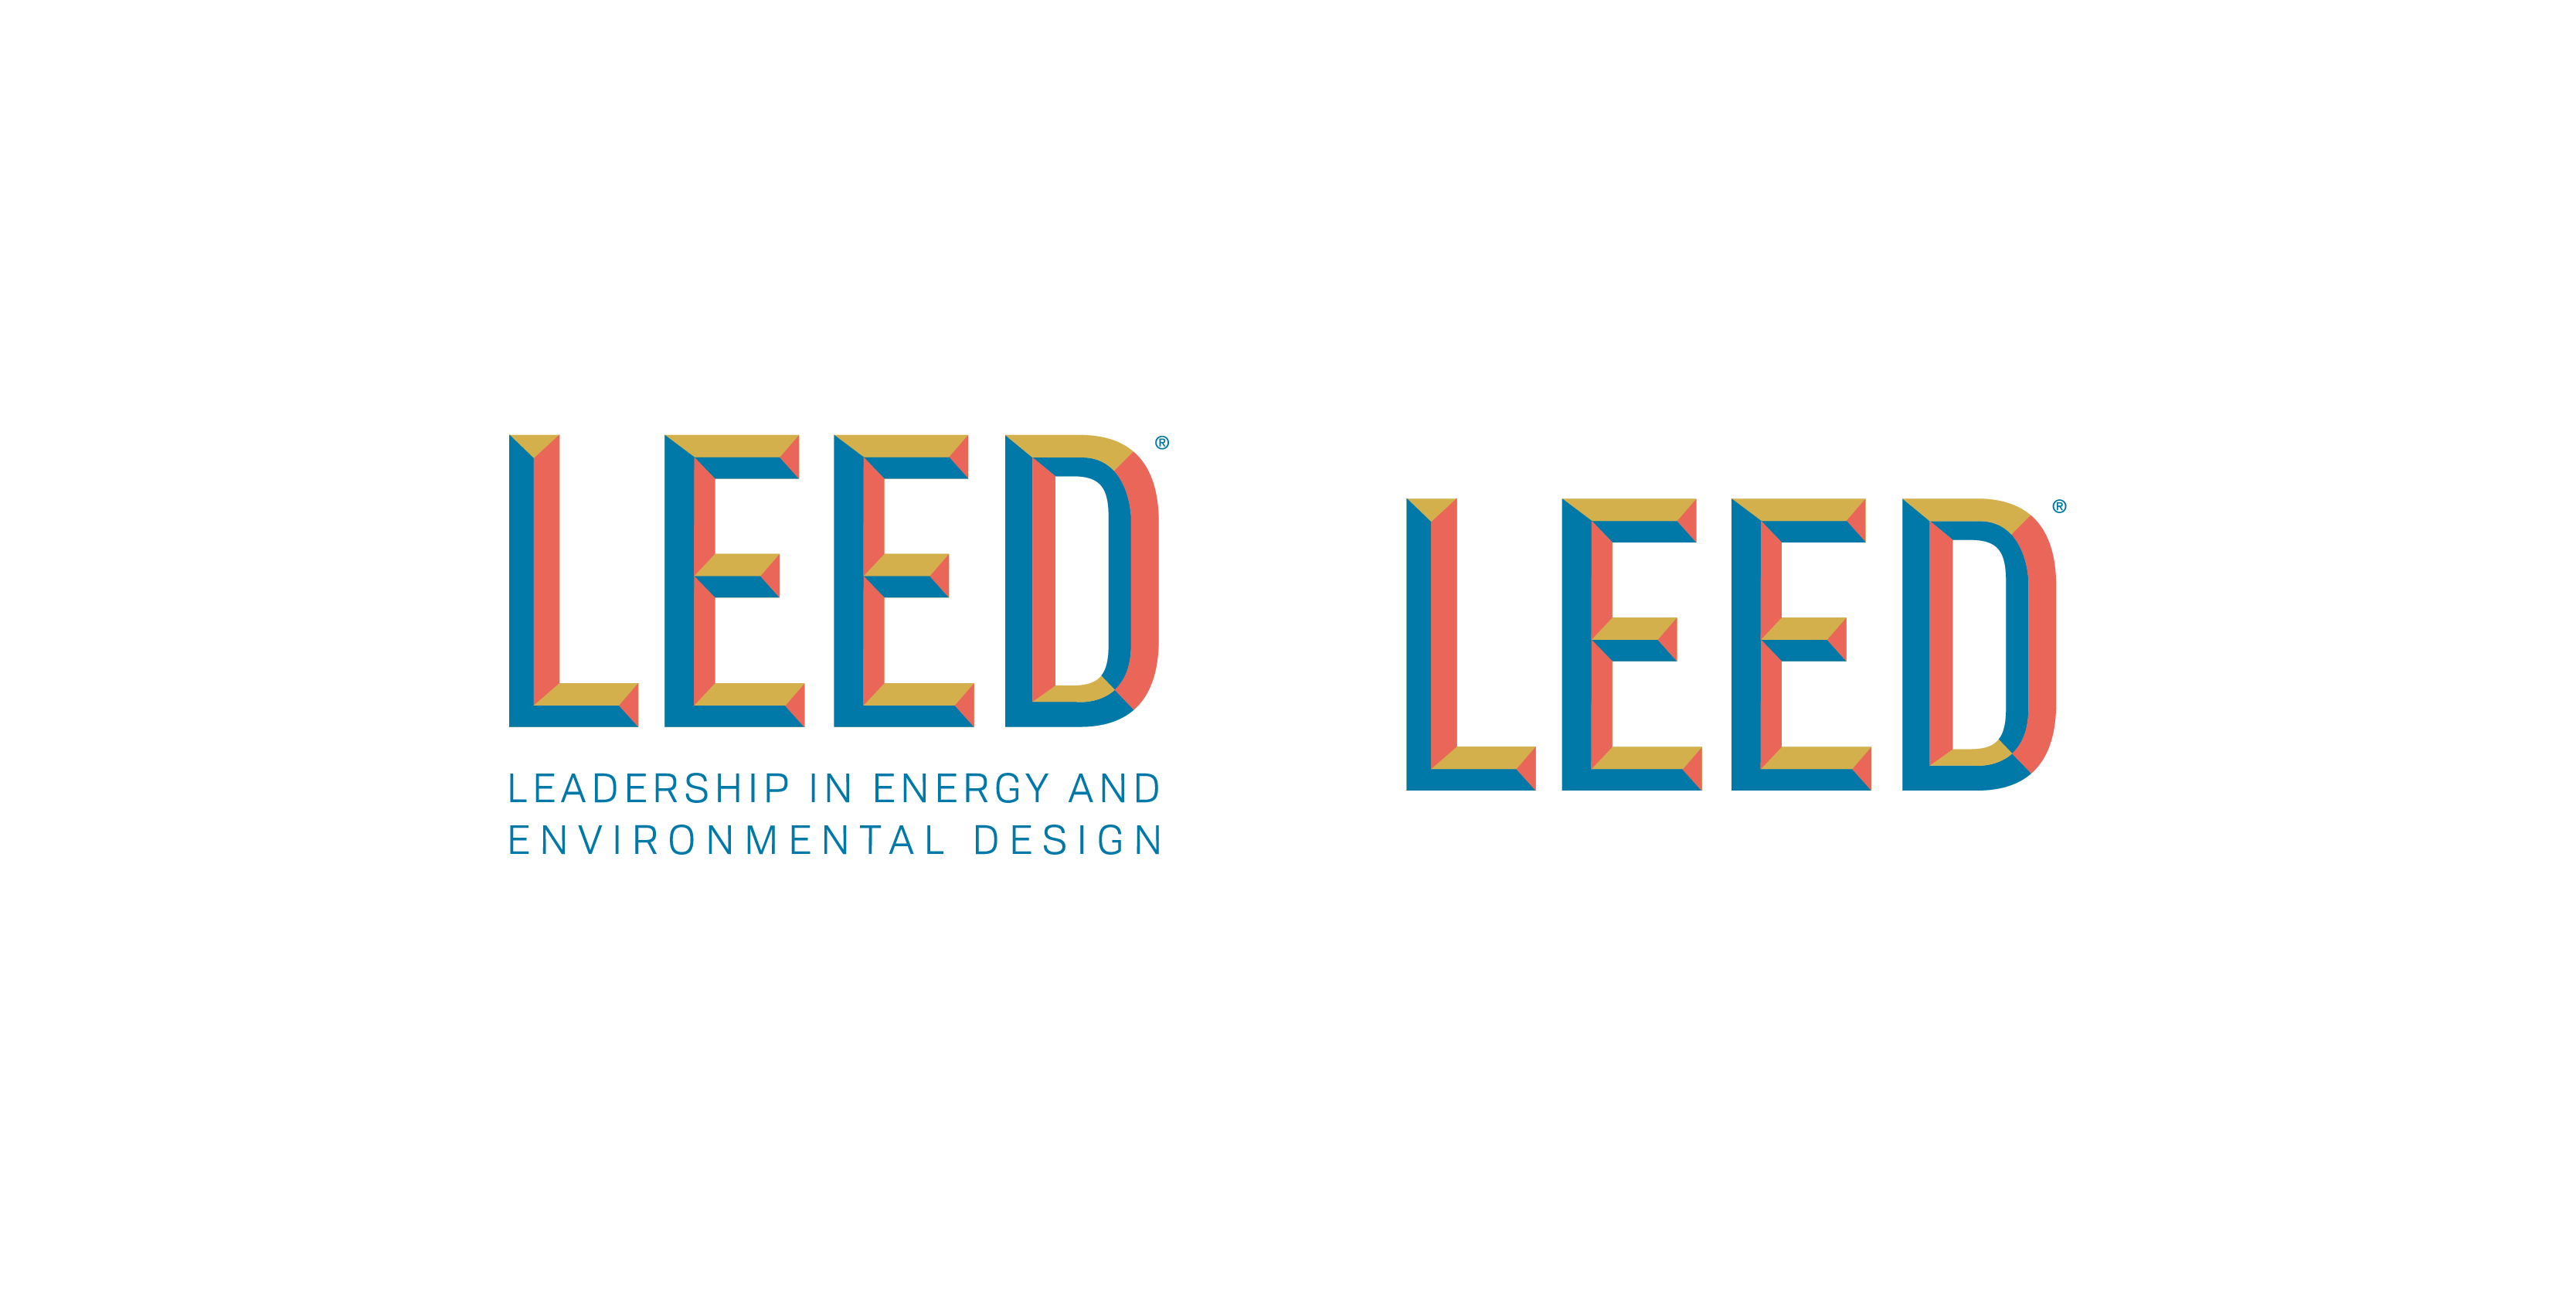 Developing the secondary LEED wordmark at USGBC